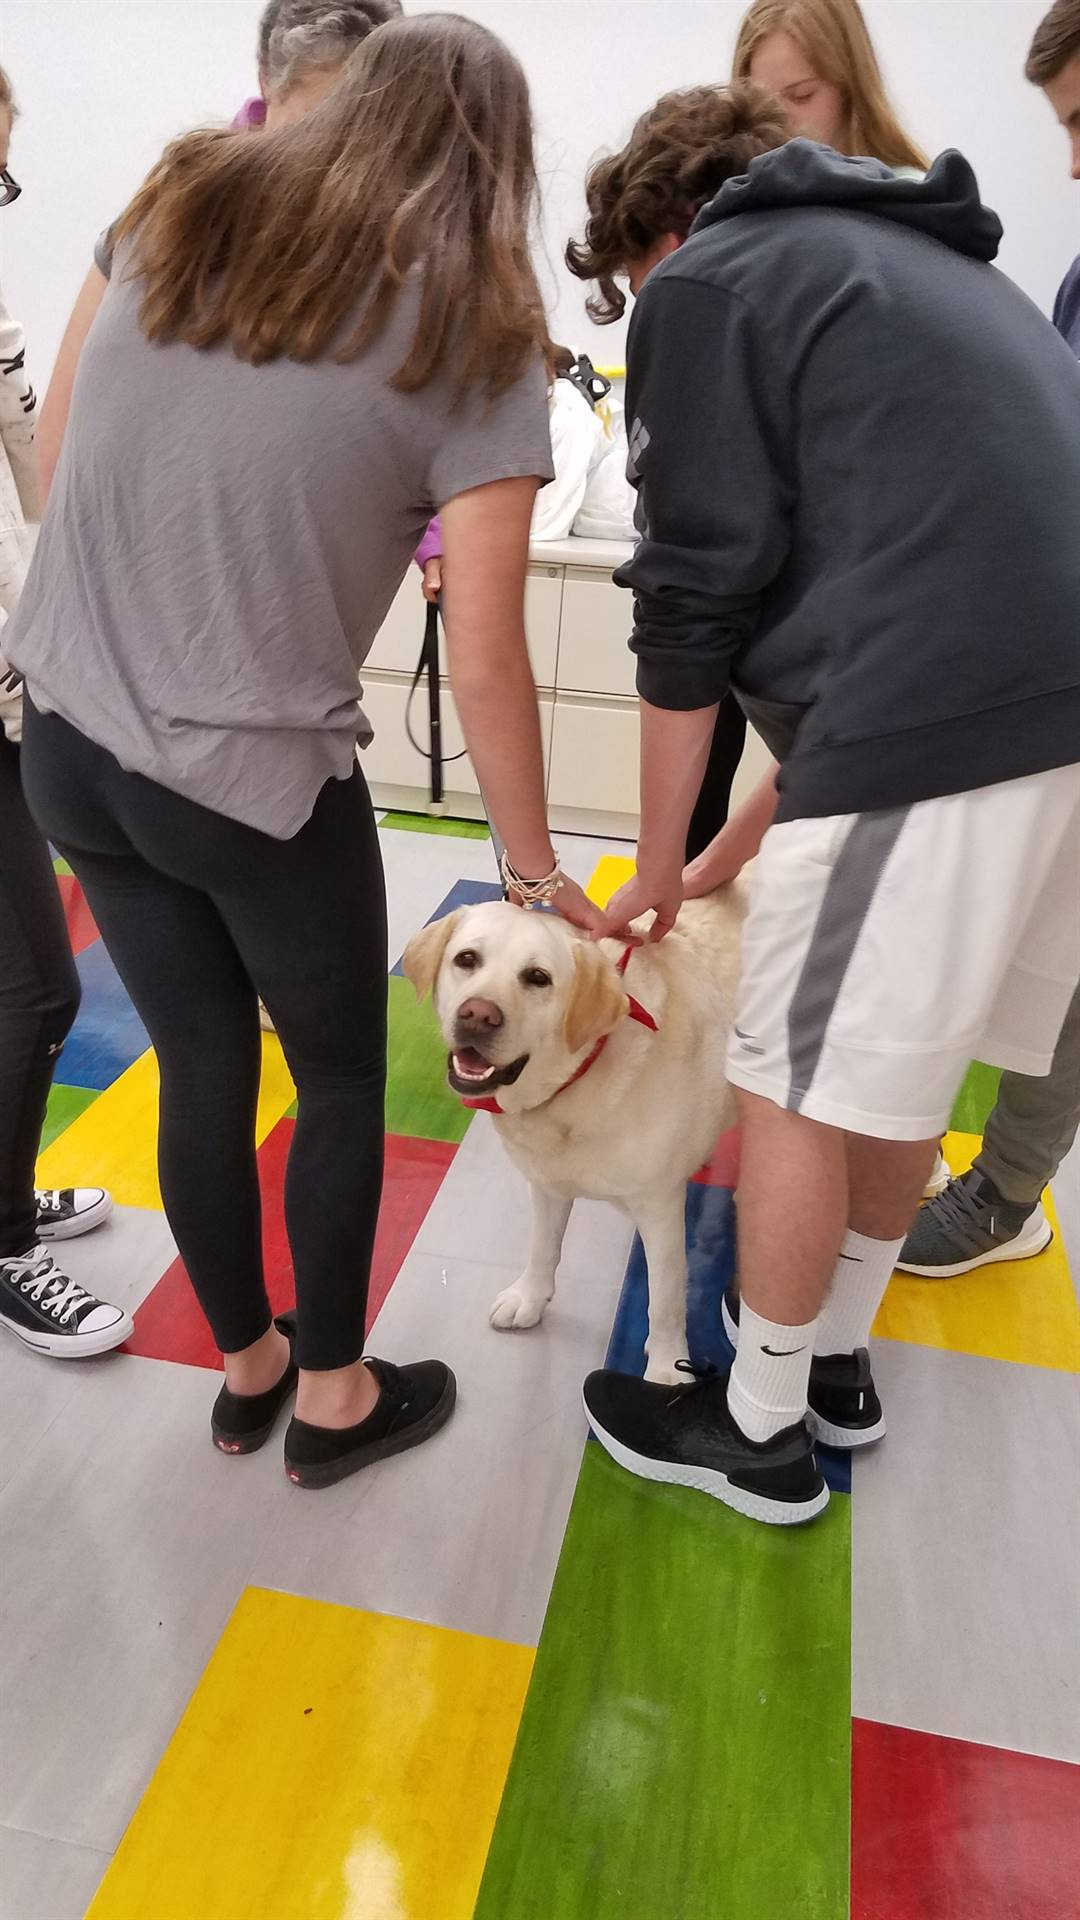 Loving our Therapy Dogs visits! - Meet Hopey